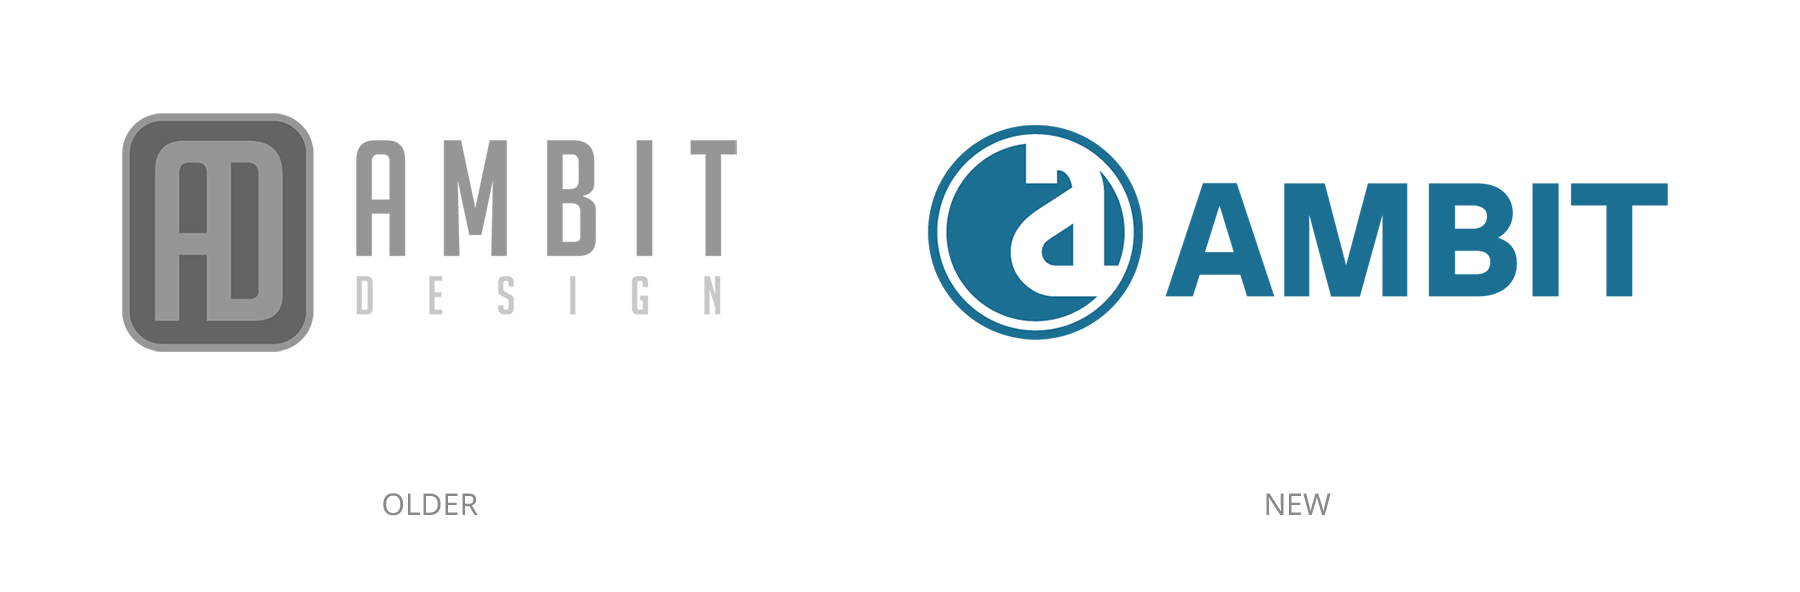 Older Ambit Design logo compared to the new Ambit logo.